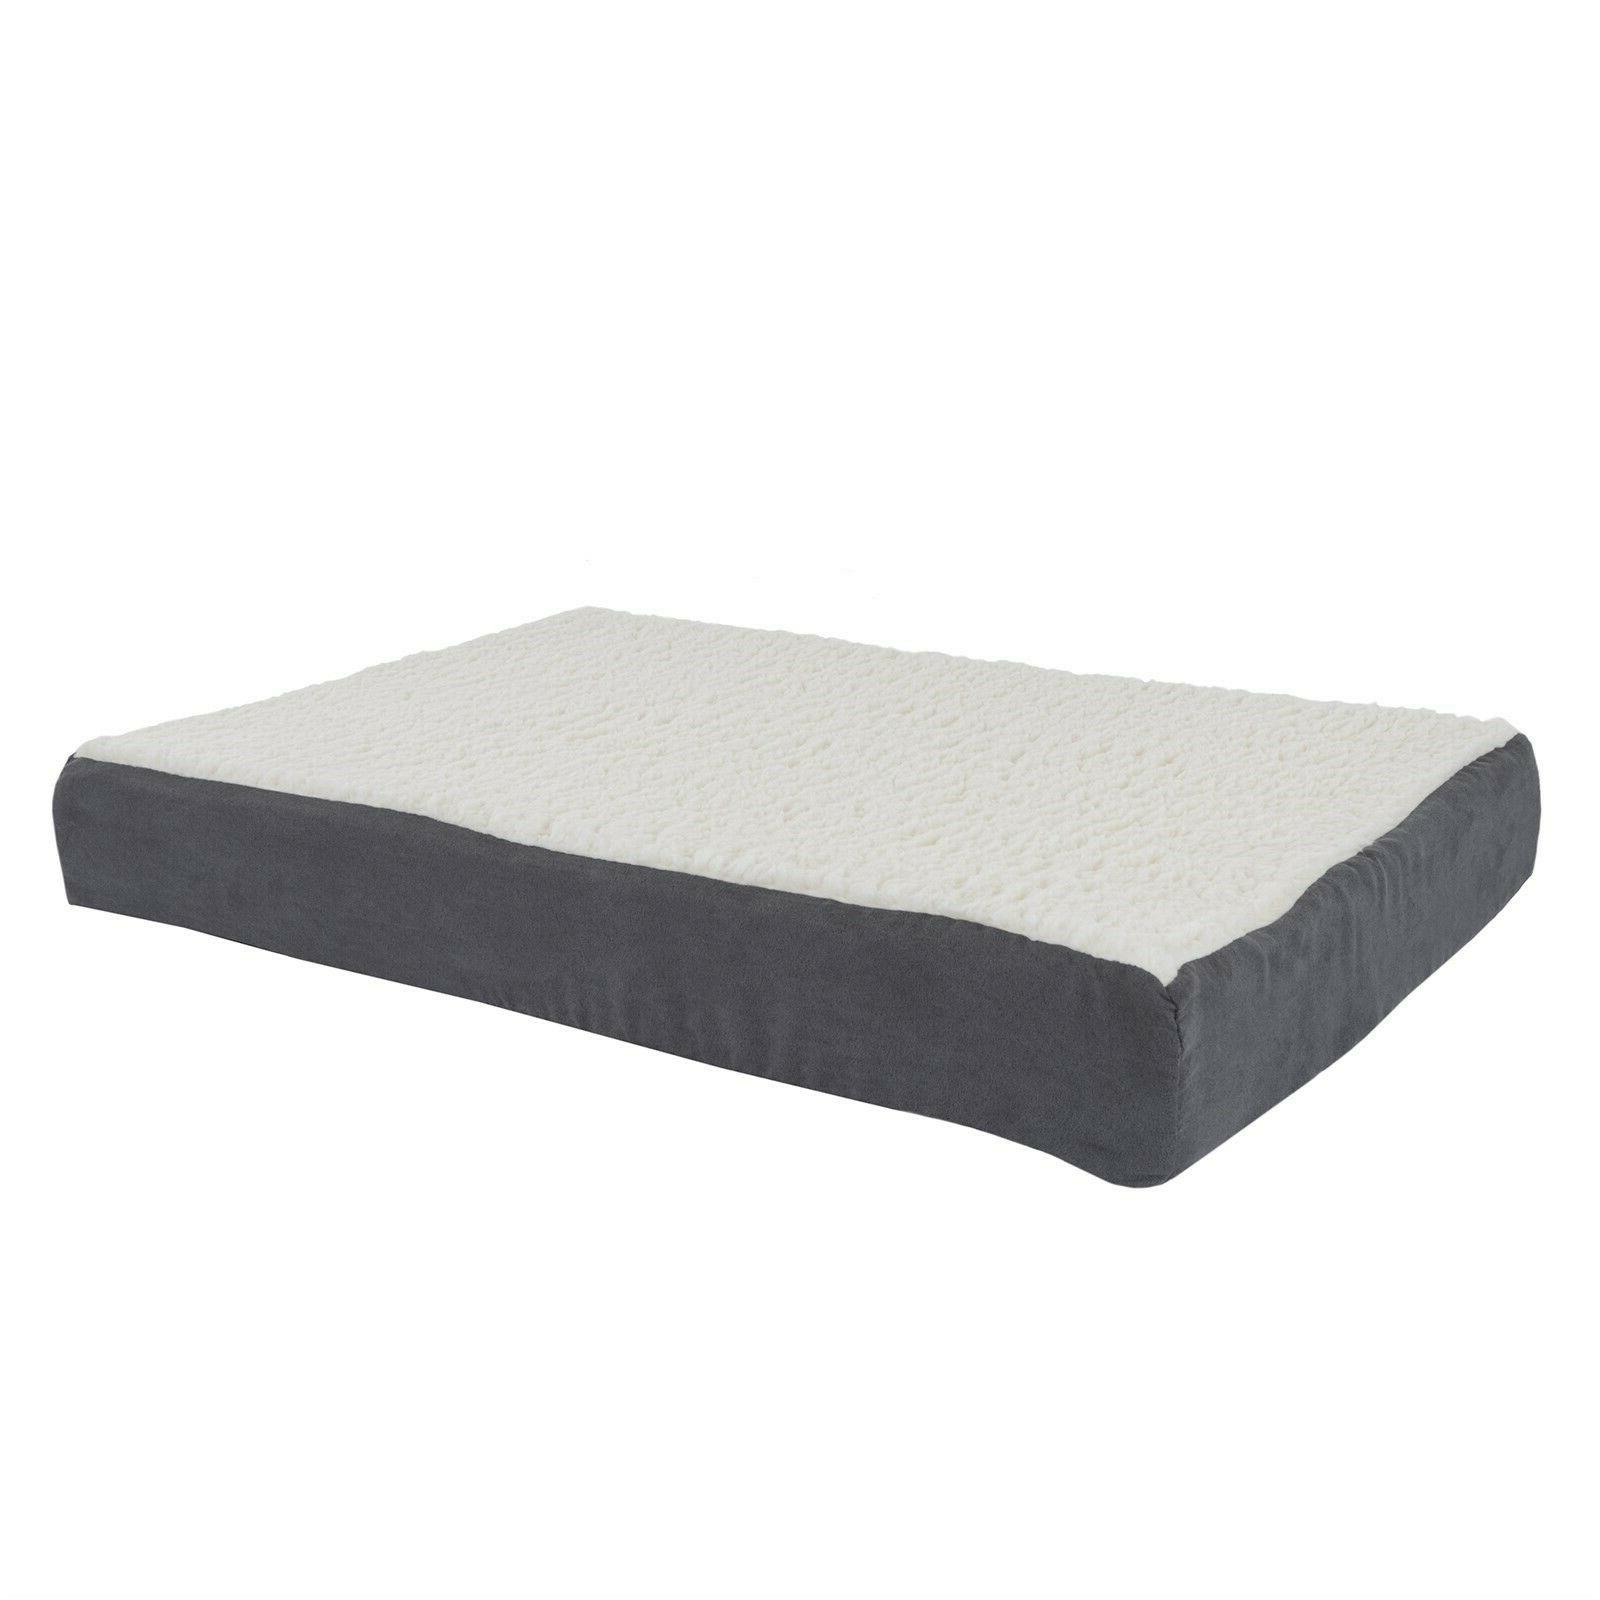 Orthopedic Dog Bed Memory Foam Cozy Sherpa 20 x 15 x 4 Washa